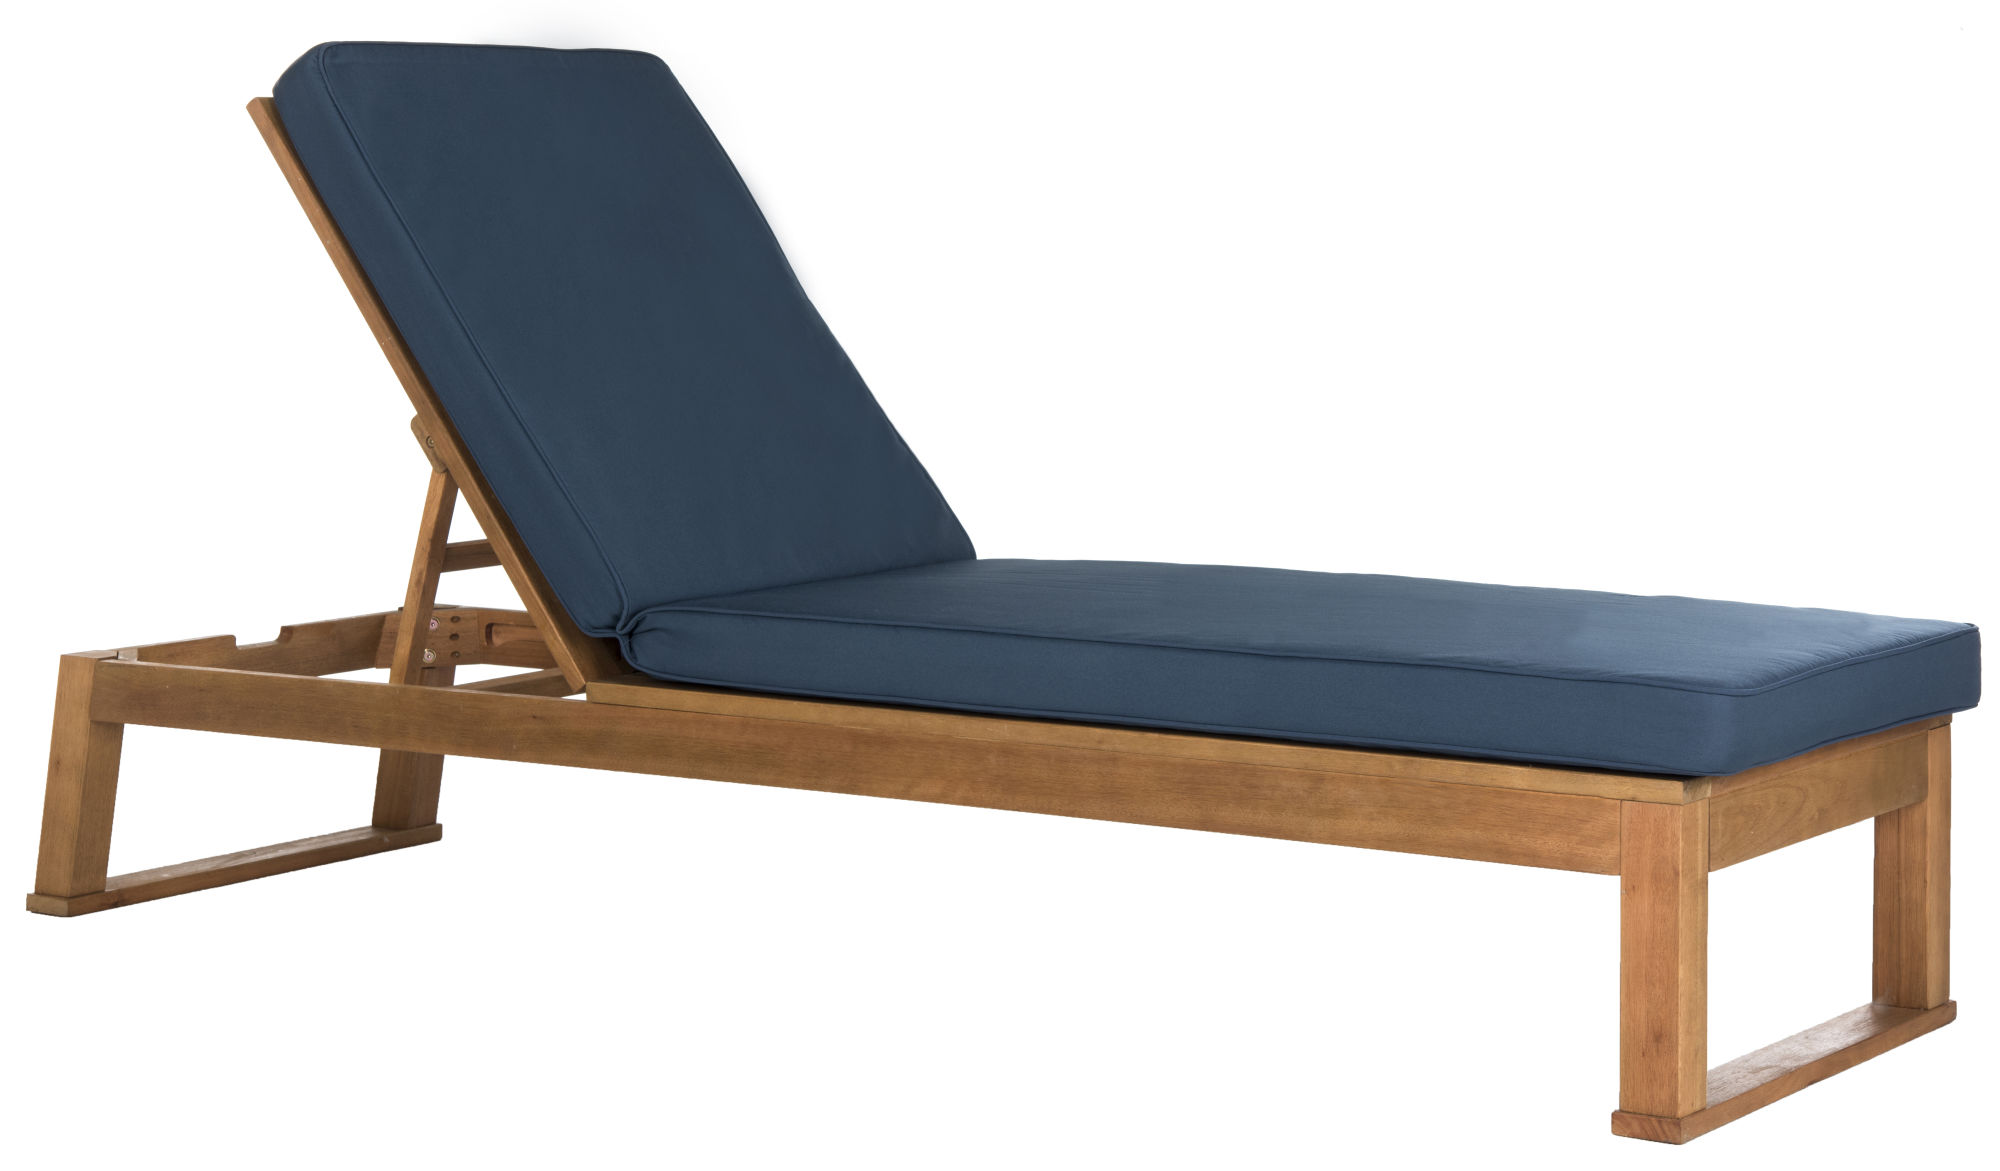 Solano Sunlounger on Safavieh Outdoor Living Solano Sunlounger id=97059